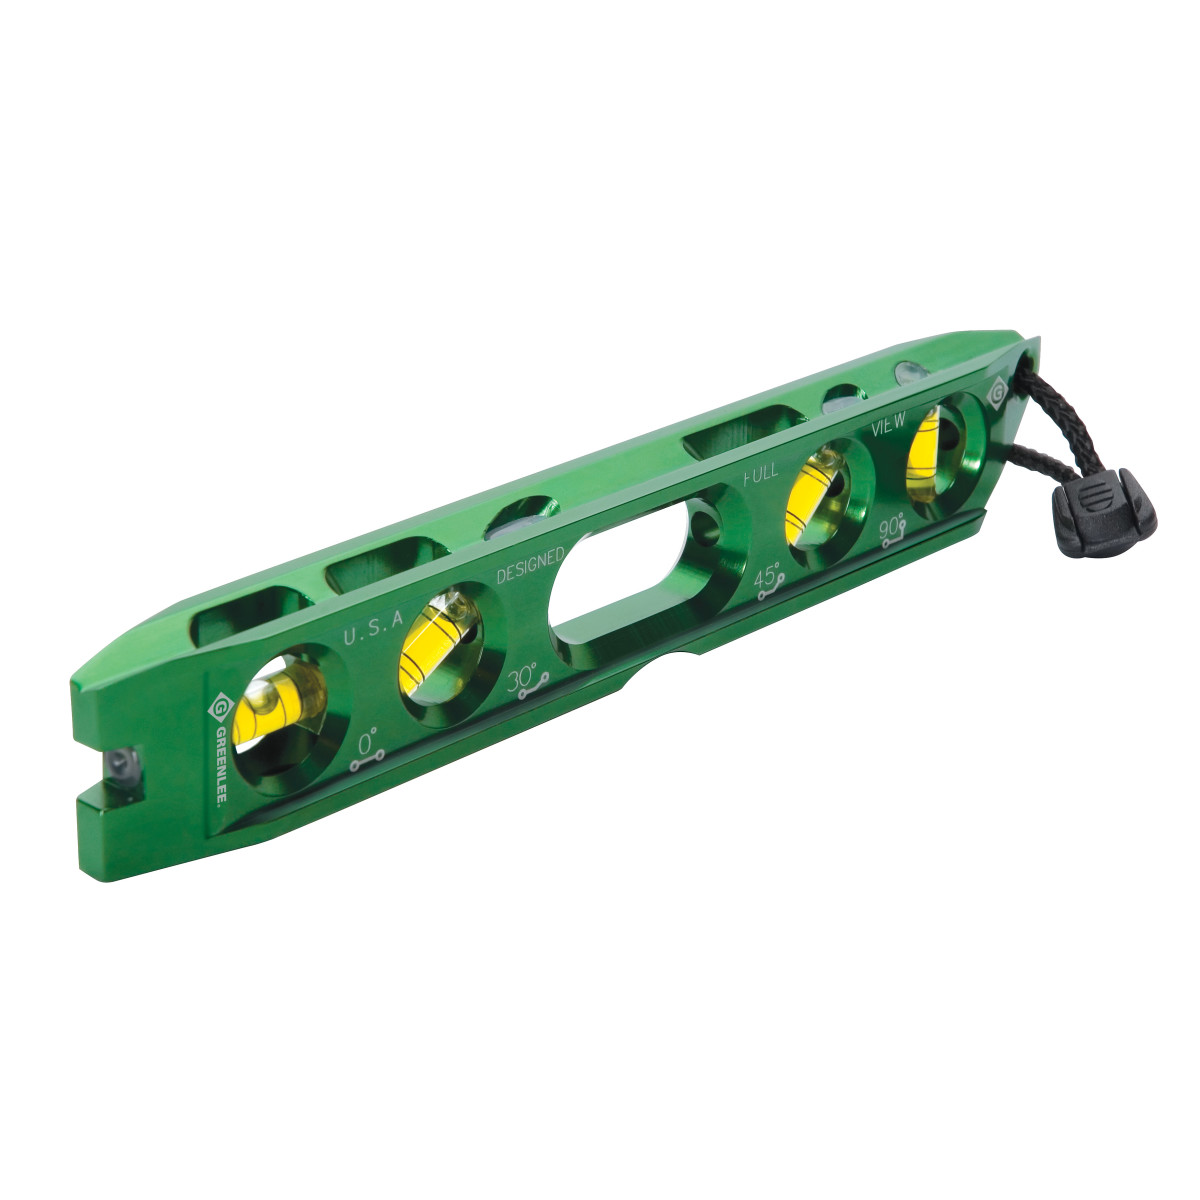 Greenlee L107 Electrician's Torpedo Level, 8-1/2""